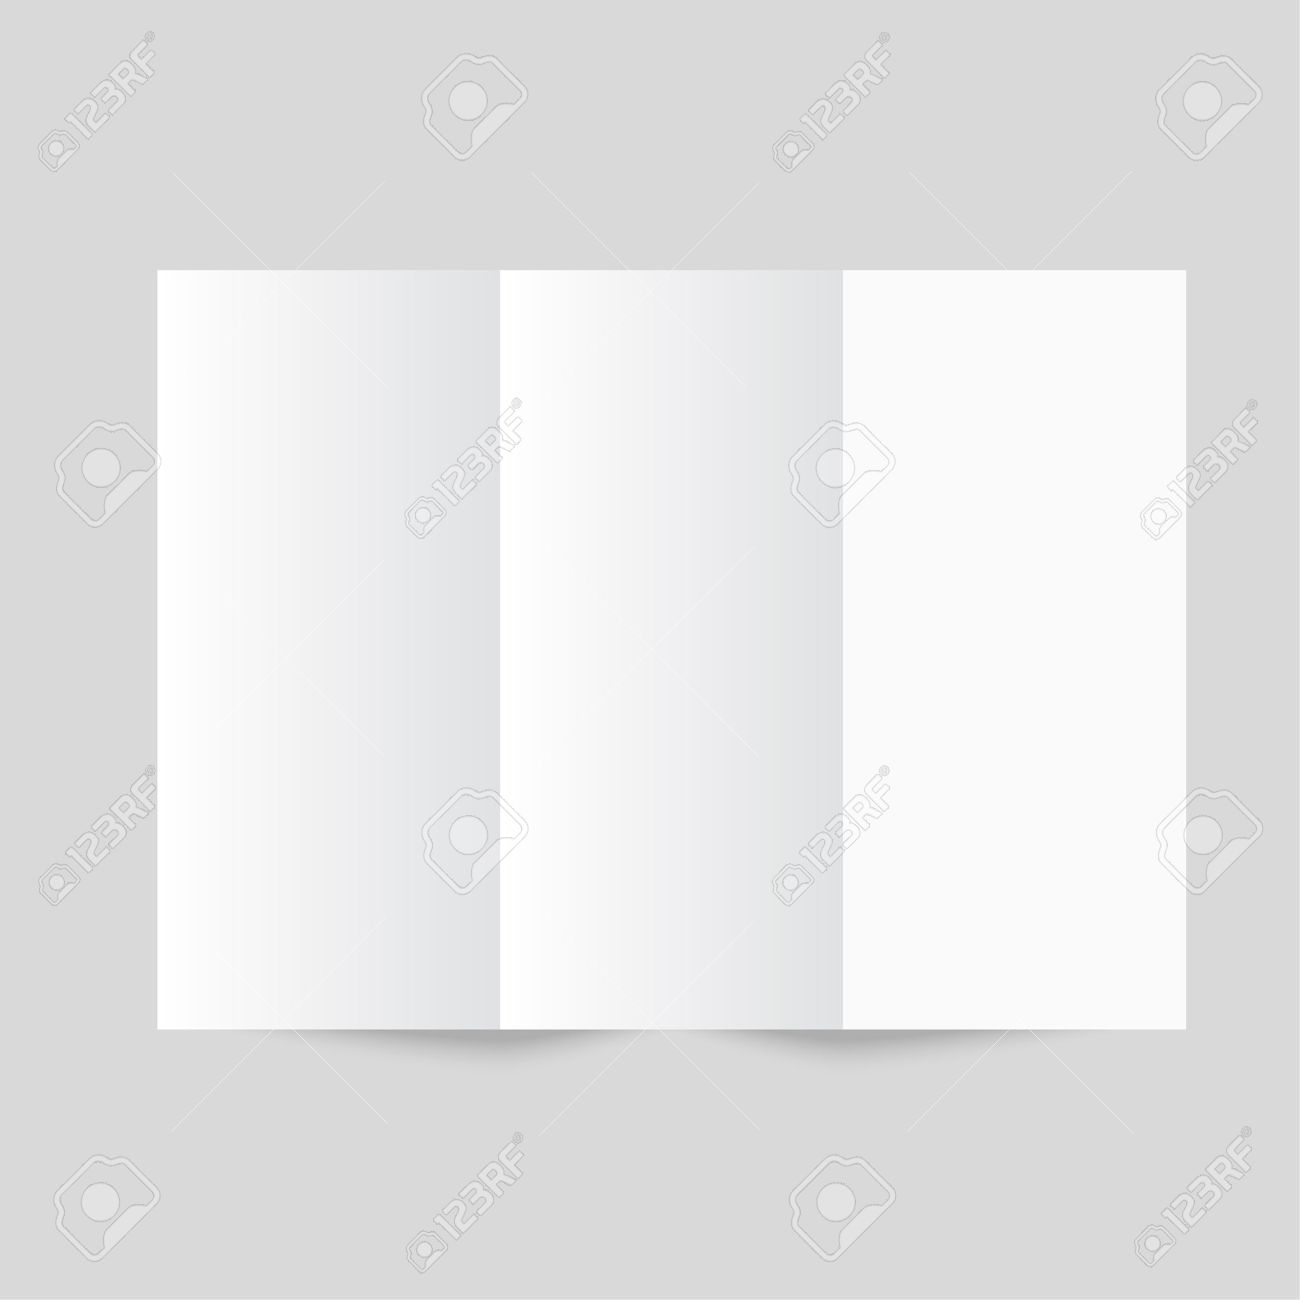 white stationery blank trifold paper brochure on gray background